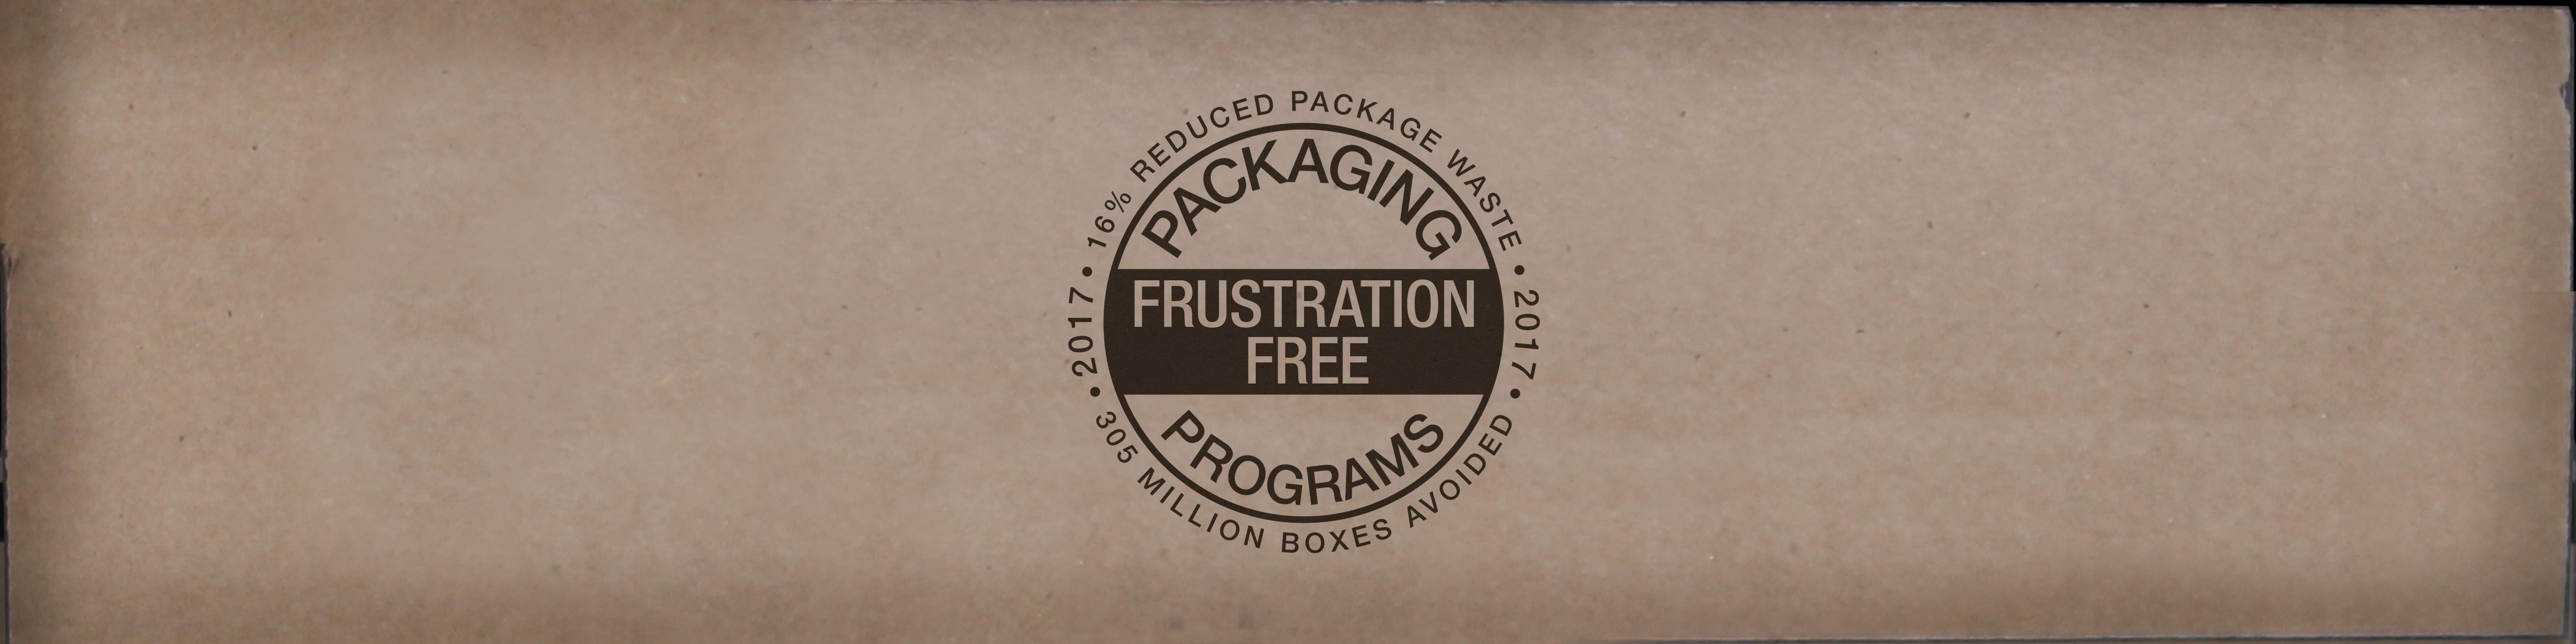 Amazon Frustration Free Packaging Programs